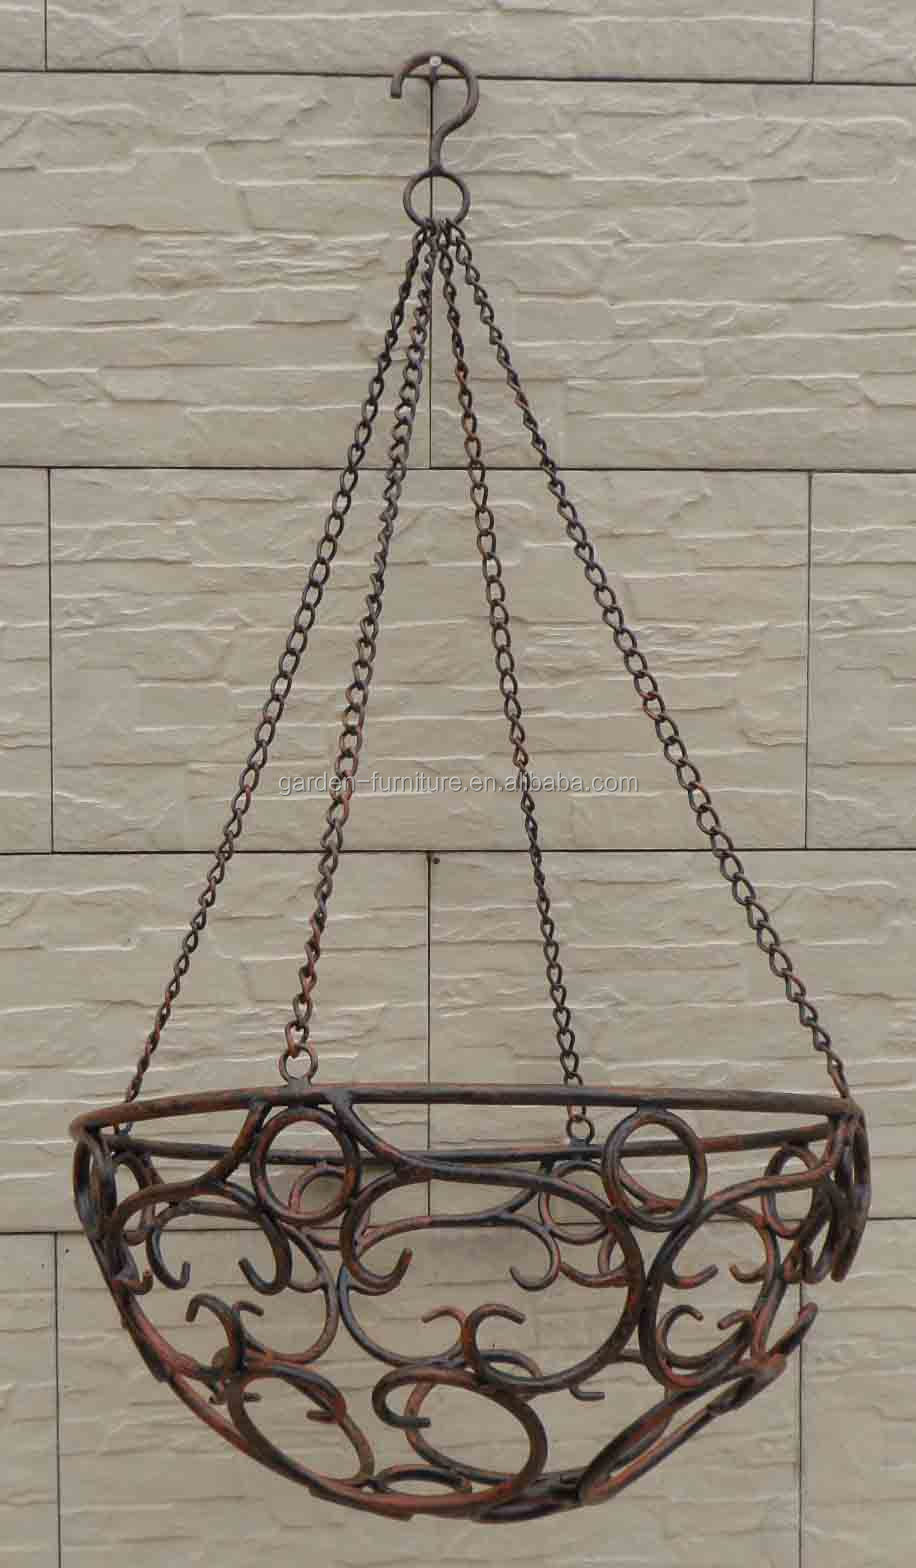 Wholesale Handicraft Garden Outdoor Decor Hanging Flower ... on Decorative Wall Sconces For Flowers Hanging Baskets Delivery id=19187